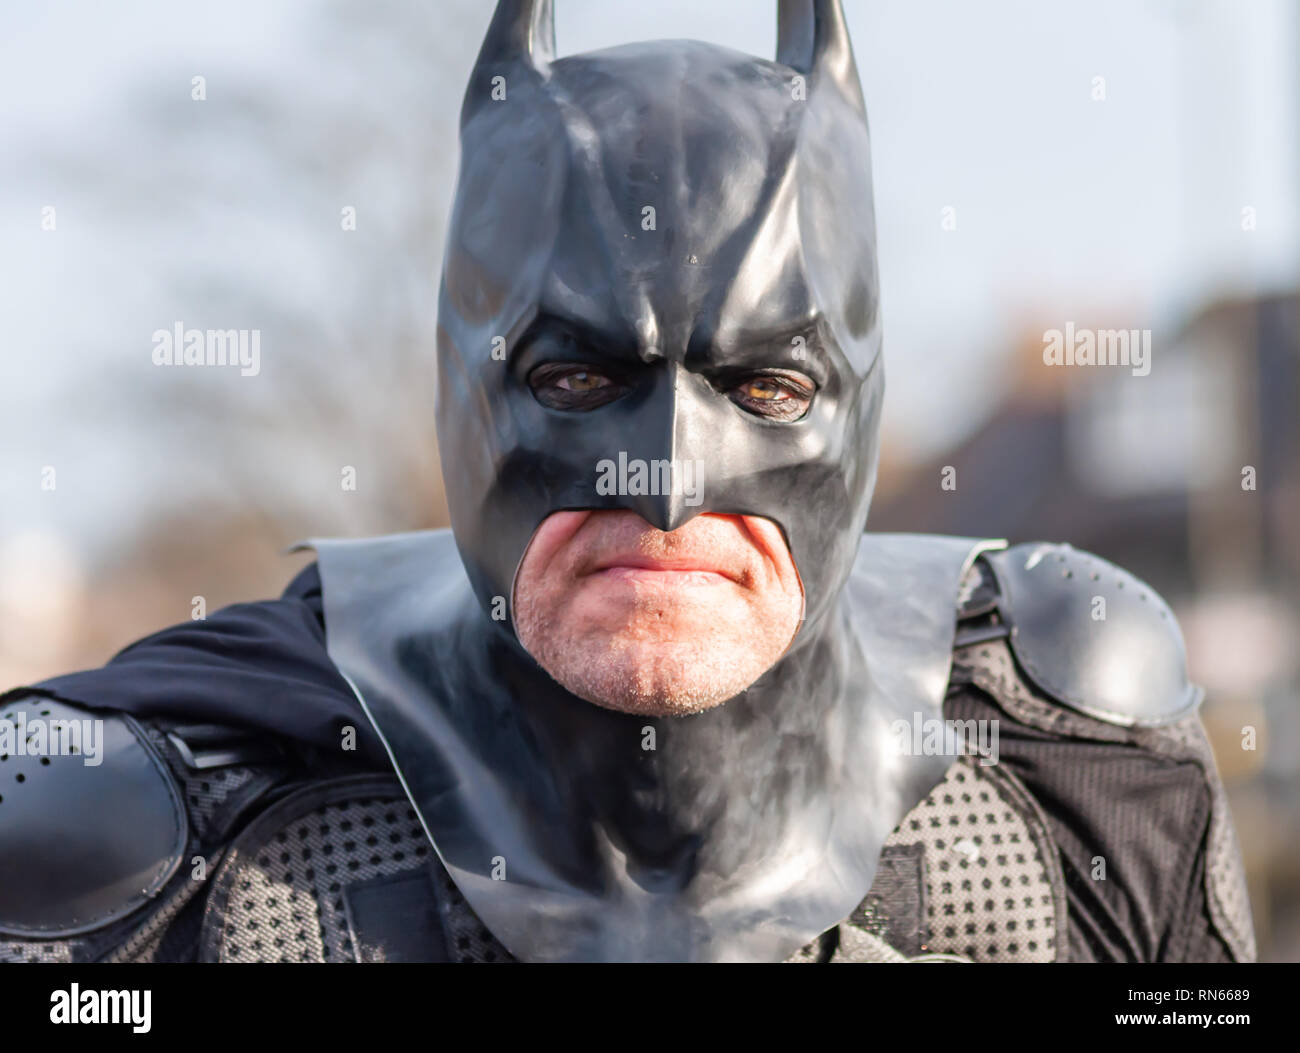 Edinburgh, Scotland, UK. 17th February, 2019. A cosplayer dressed as the fictional superhero Batman from the comic book published by DC Comics, arriving on day three of the Capital Sci-Fi Con held at the Edinburgh Corn Exchange. Credit: Skully/Alamy Live News - Stock Image